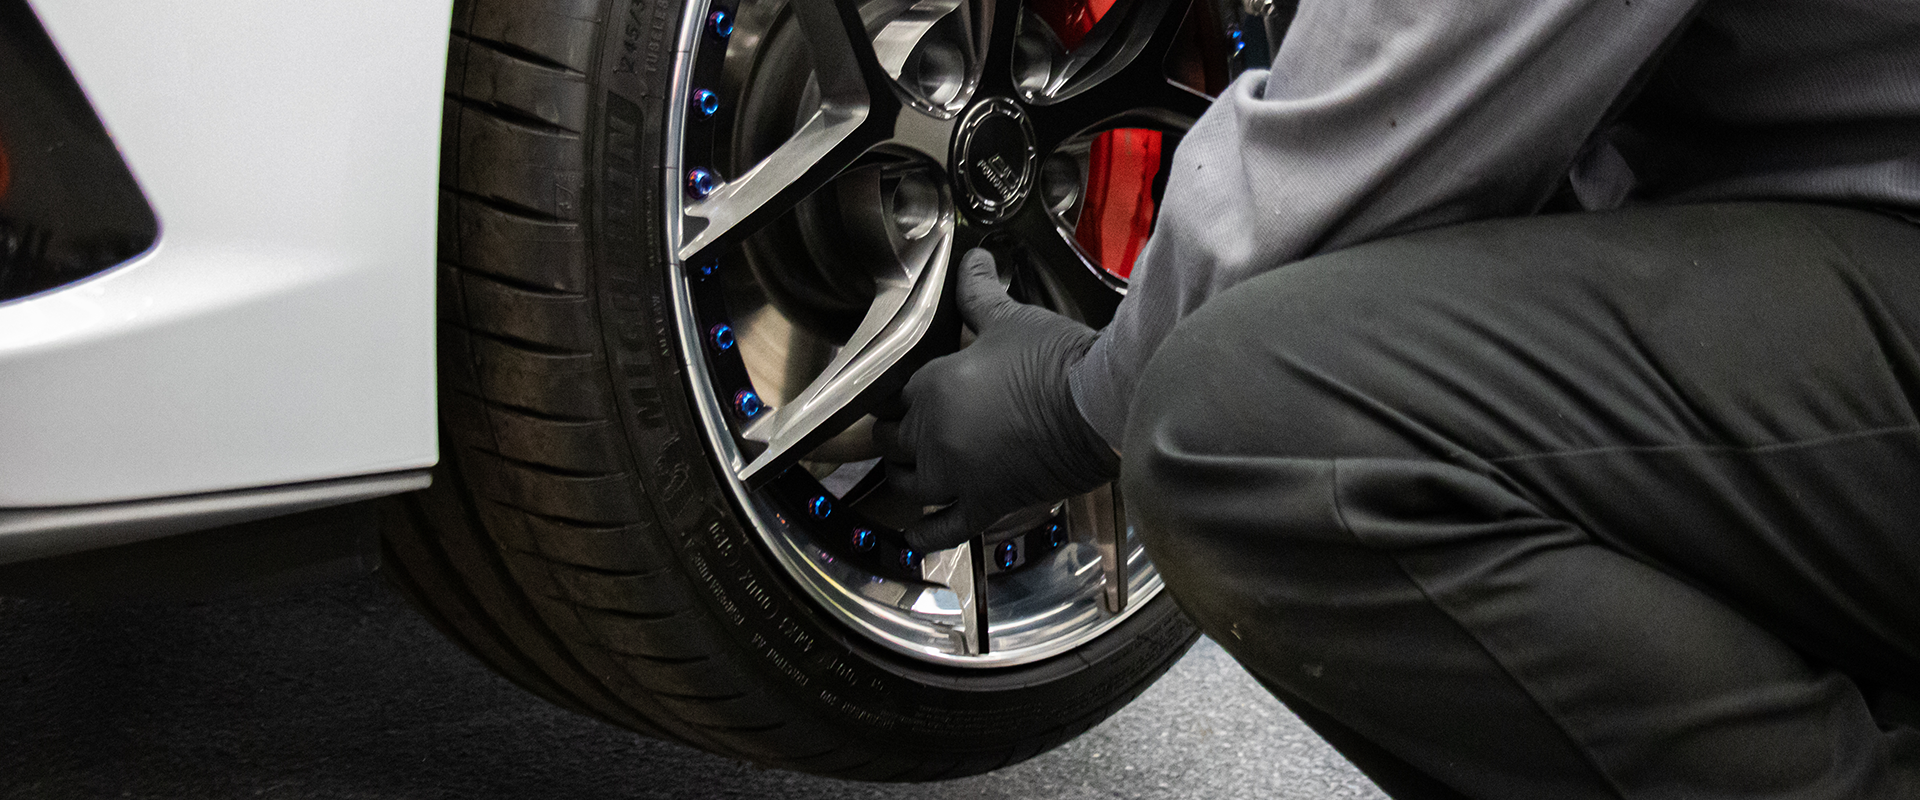 Tire Mount and Balance Exotic Performance Sports Cars and Luxury Vehicles in Chicago